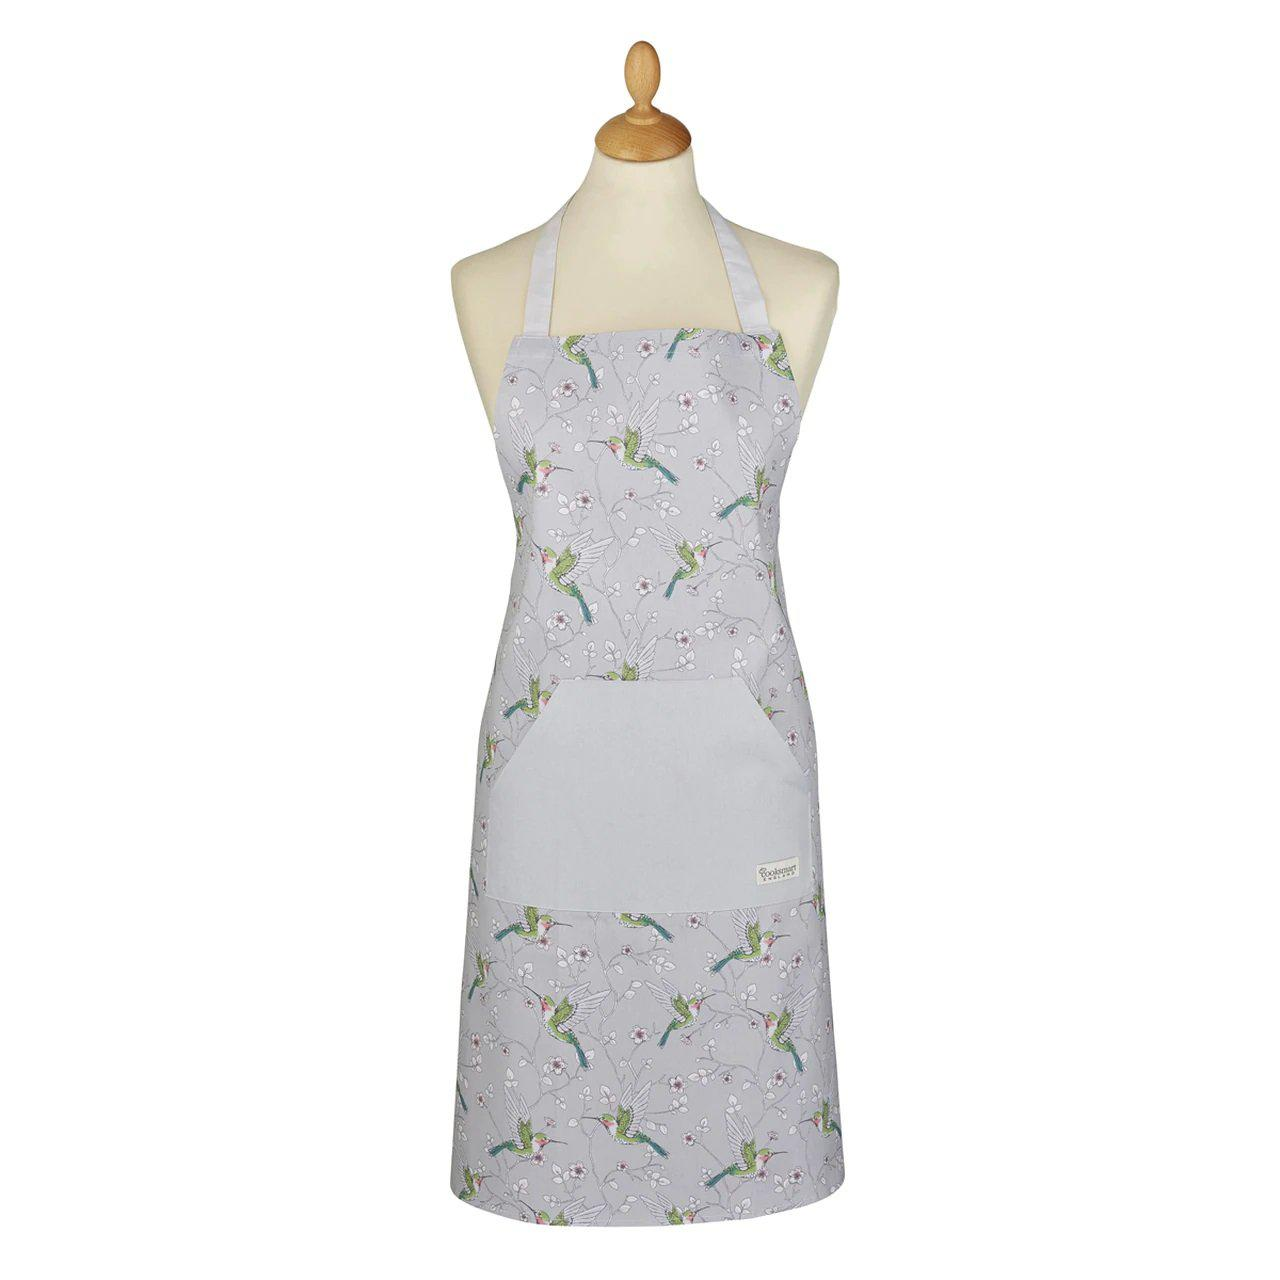 Apron - Hummingbirds-Homeware-City Look-Thursford Enterprises Ltd.